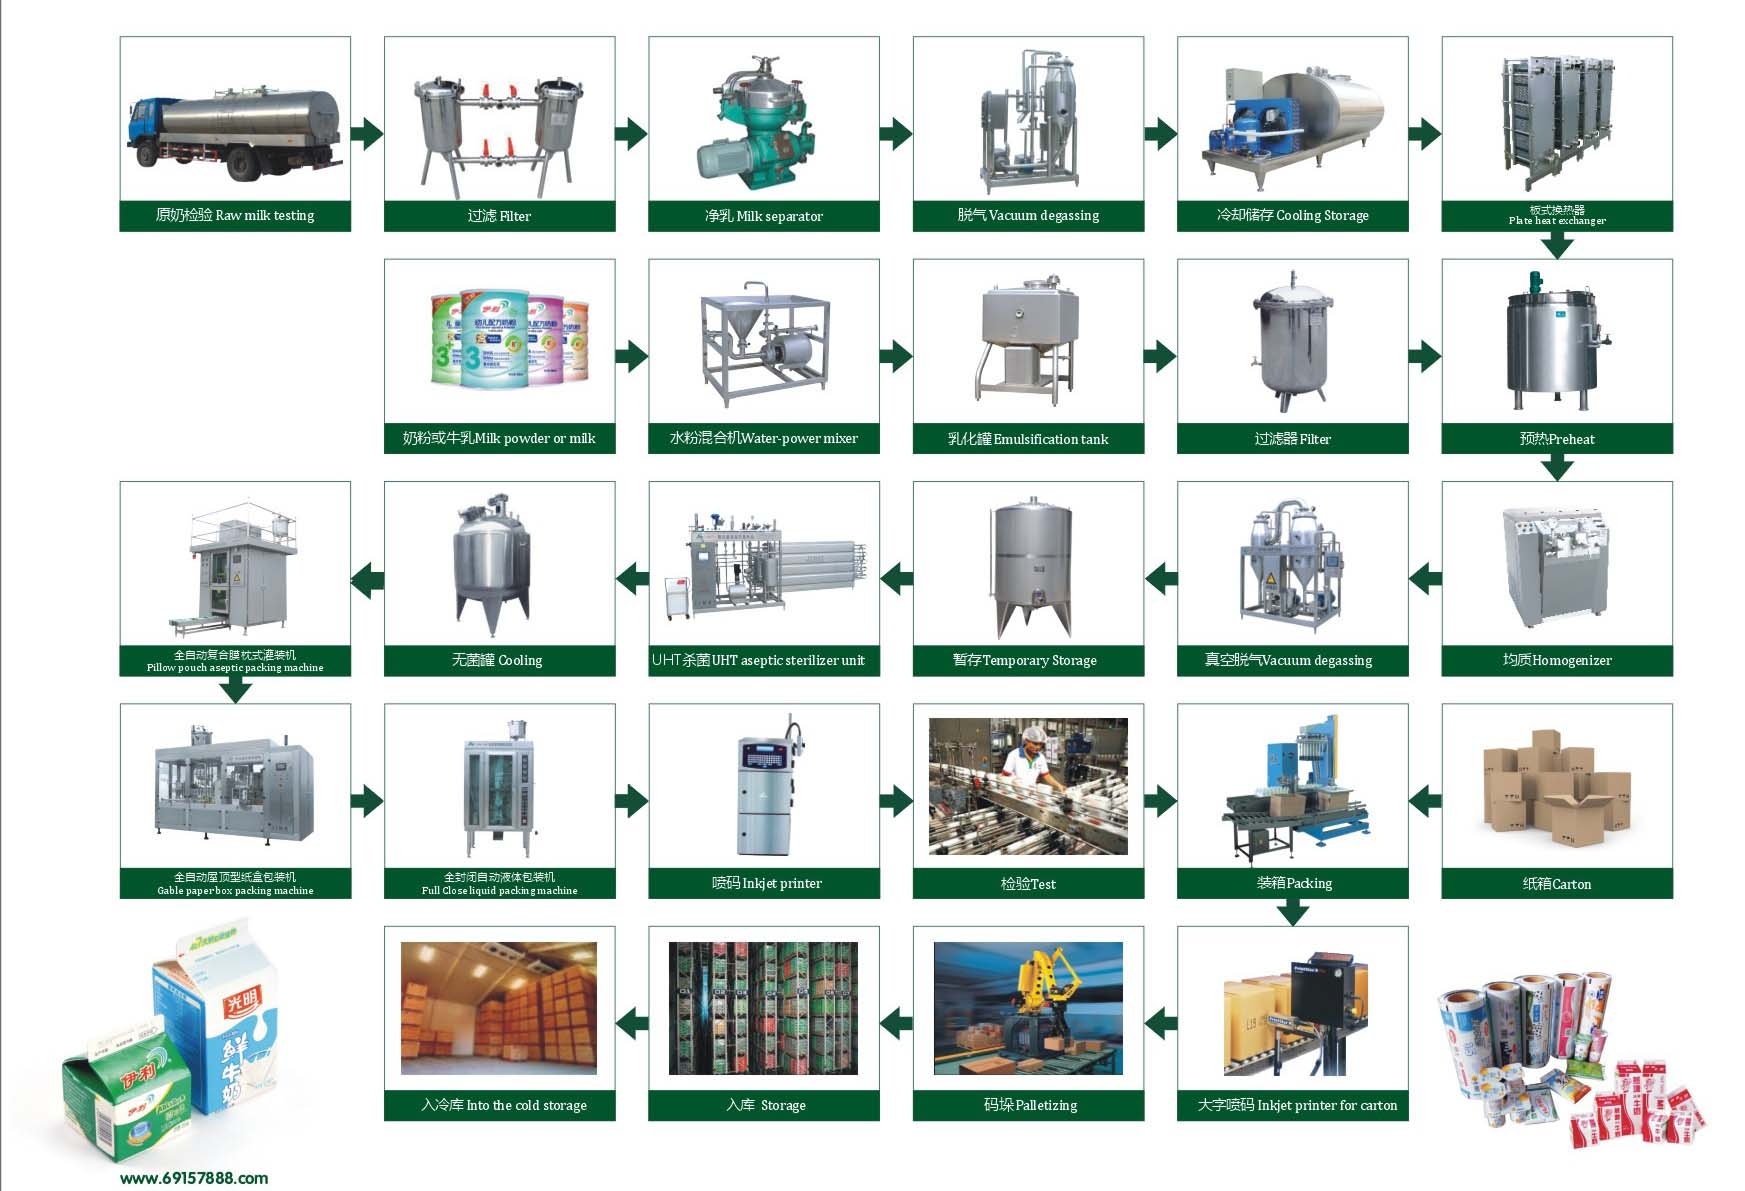 Popsicle production line flow diagramg 17511179 mfgflow popsicle production line flow diagramg 17511179 mfgflow pinterest ccuart Image collections